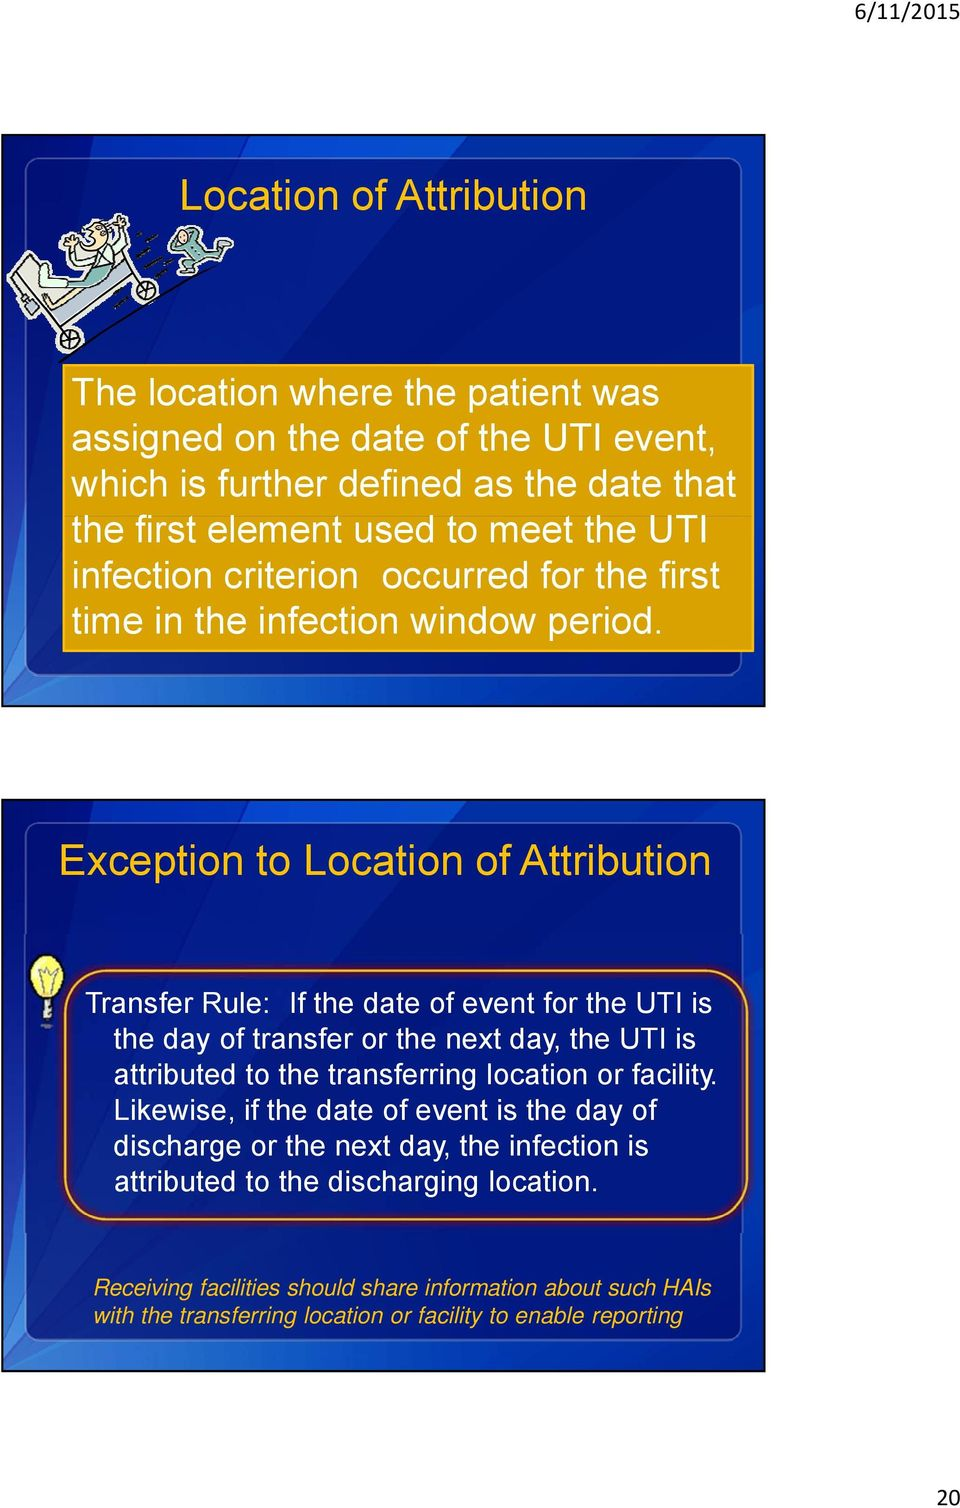 Exception to Location of Attribution Transfer : If the date of event for the UTI is the day of transfer or the next day, the UTI is attributed to the transferring location or